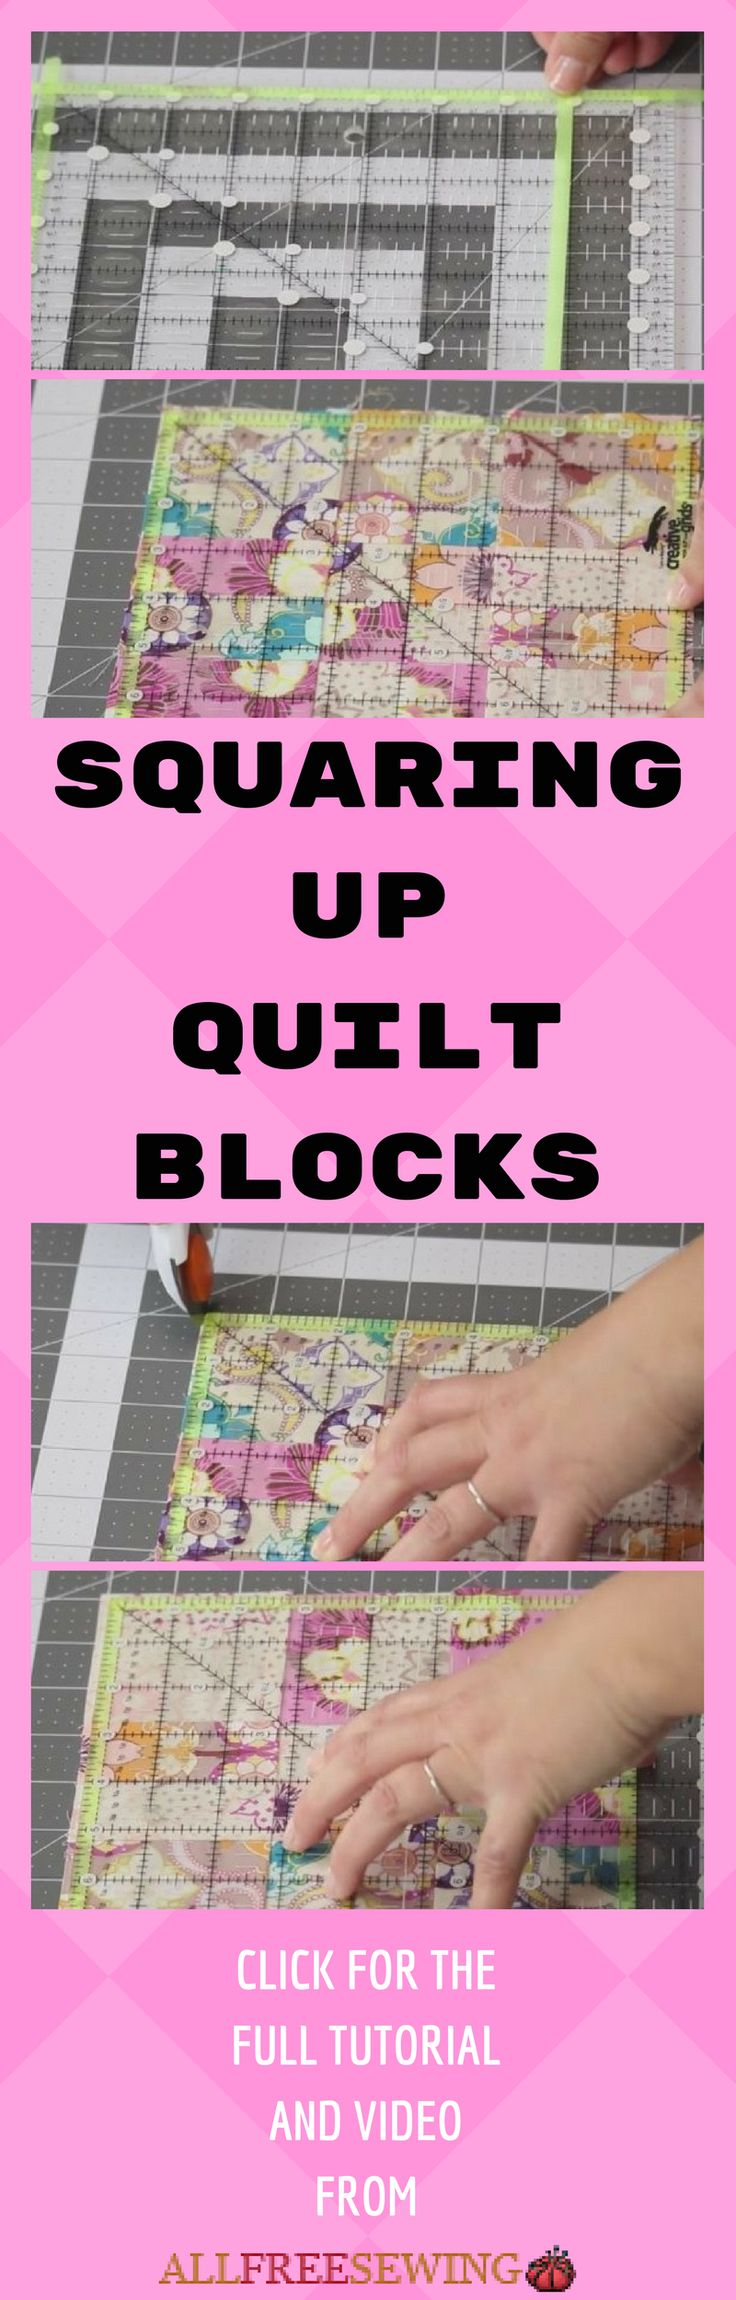 Squaring Up Quilt Blocks | AllFreeSewing.com